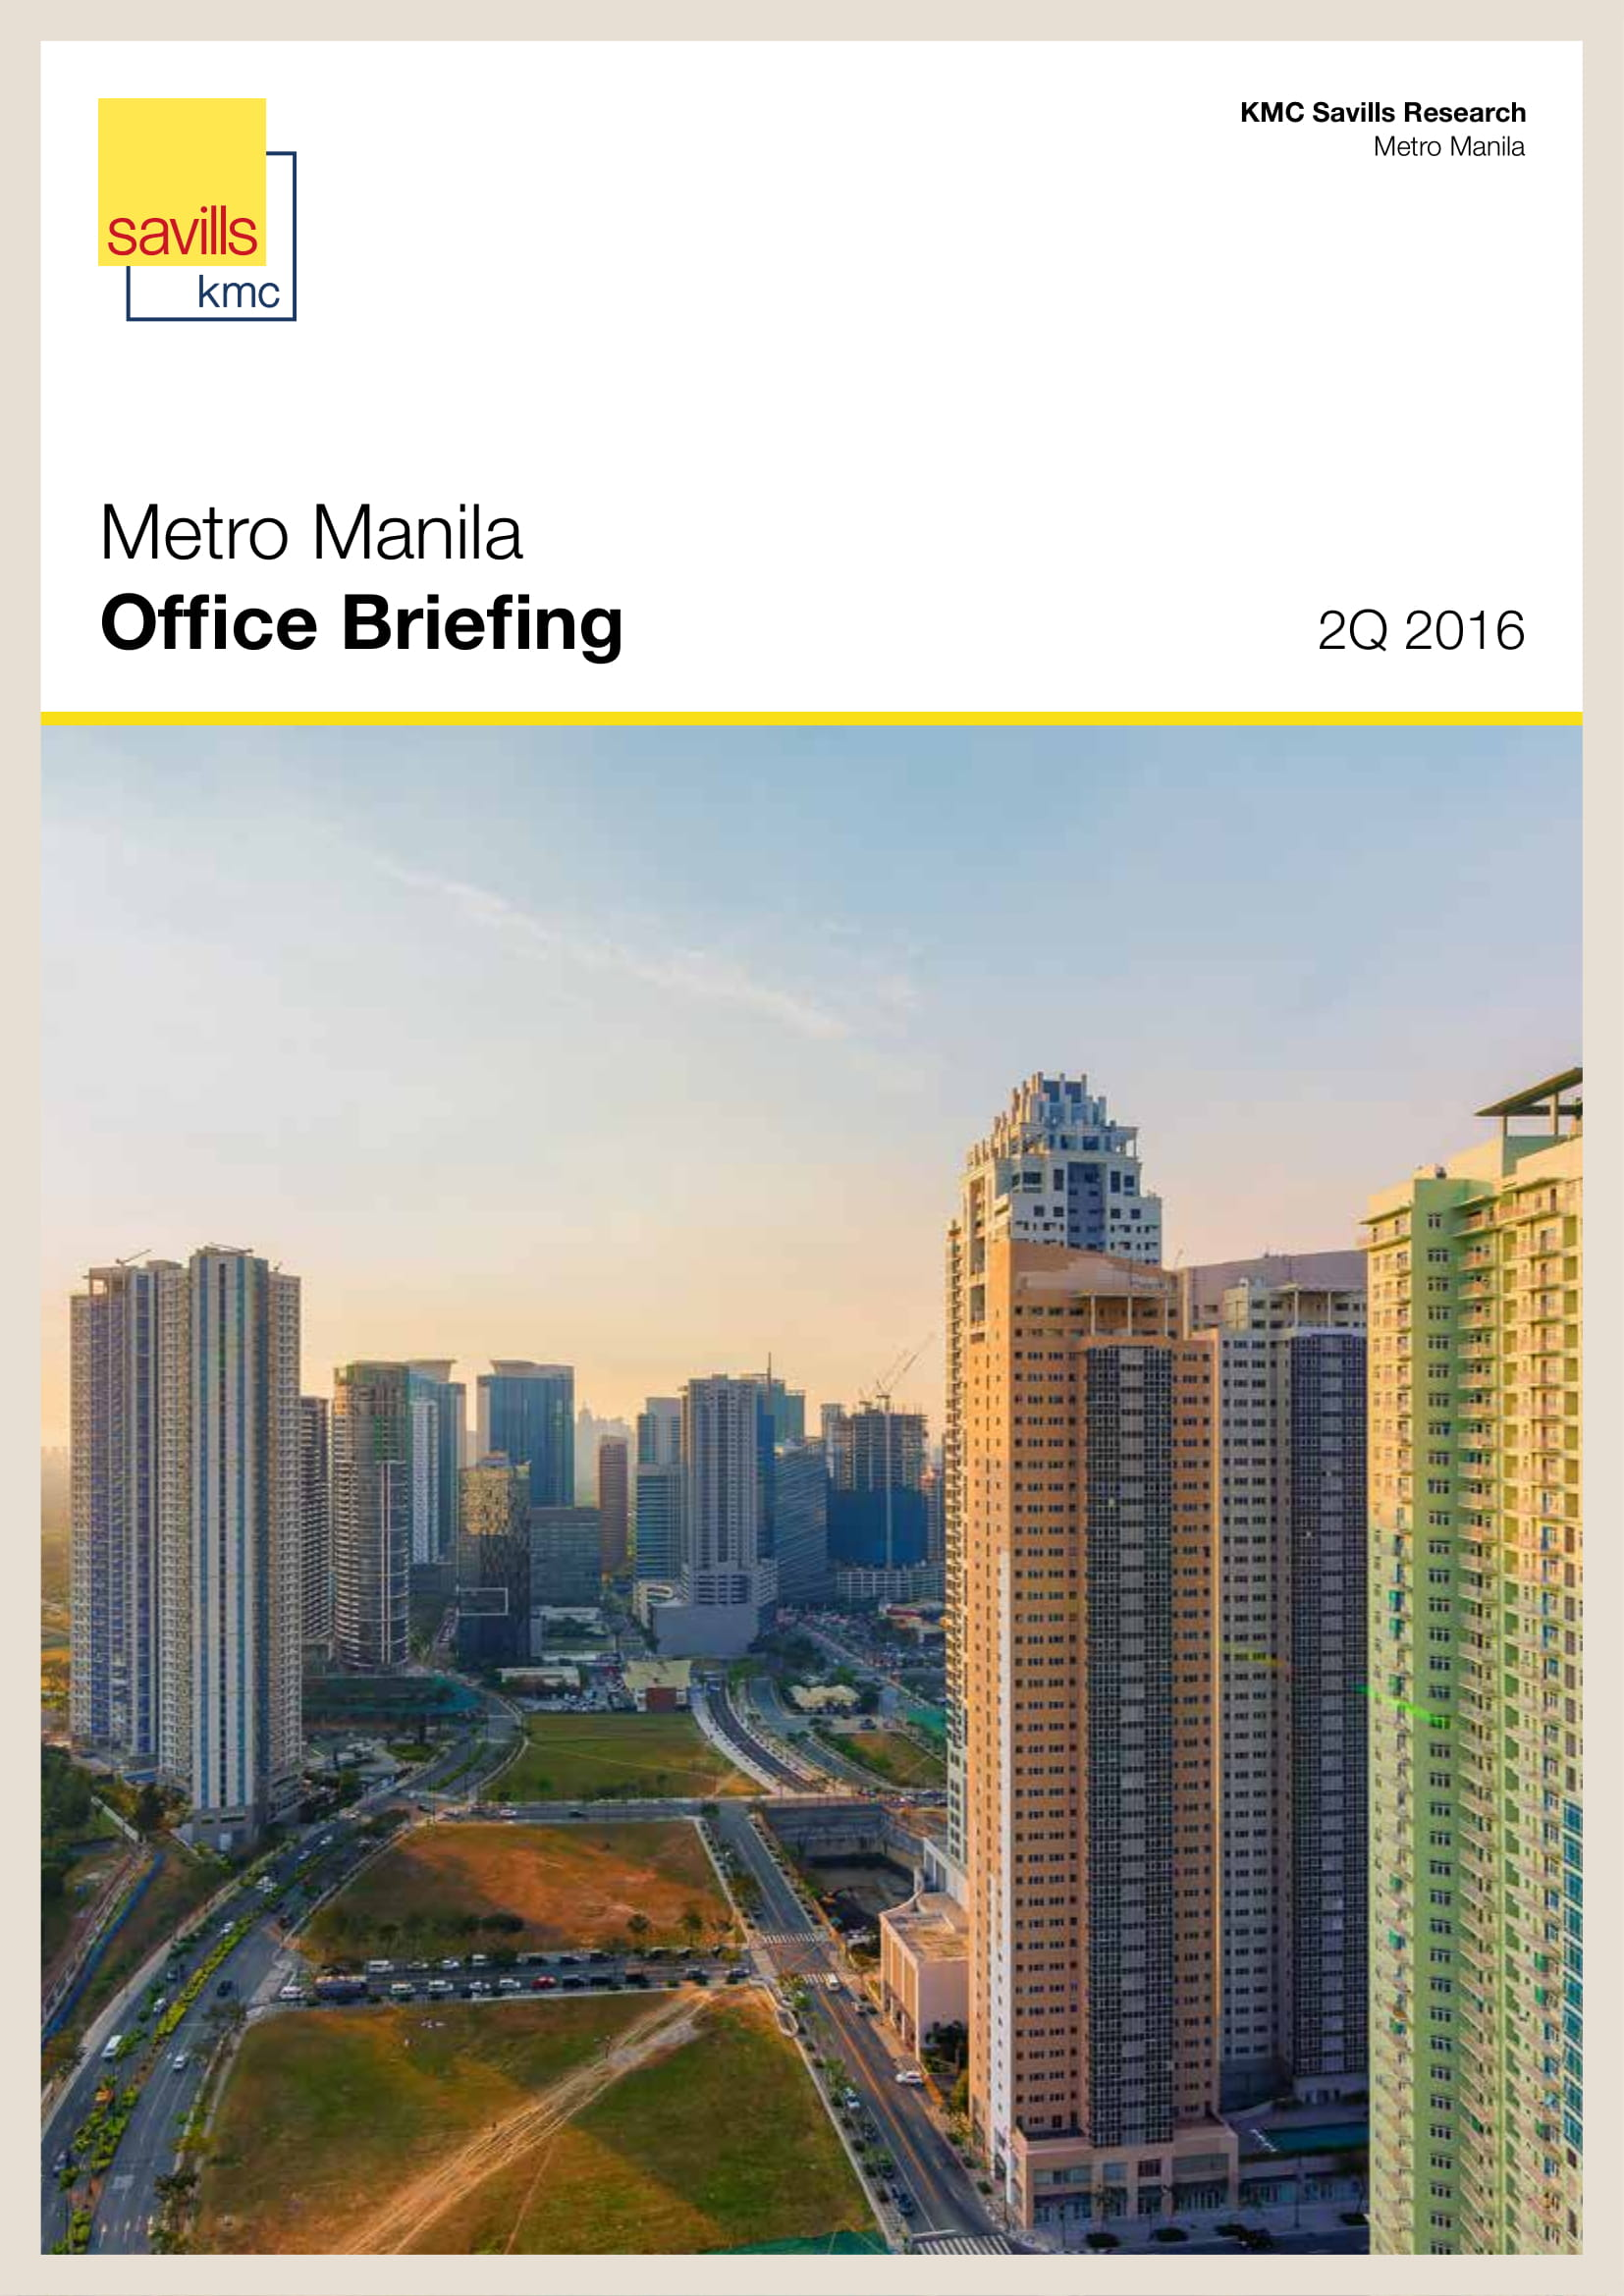 Metro Manila Office Briefing 2Q 2016